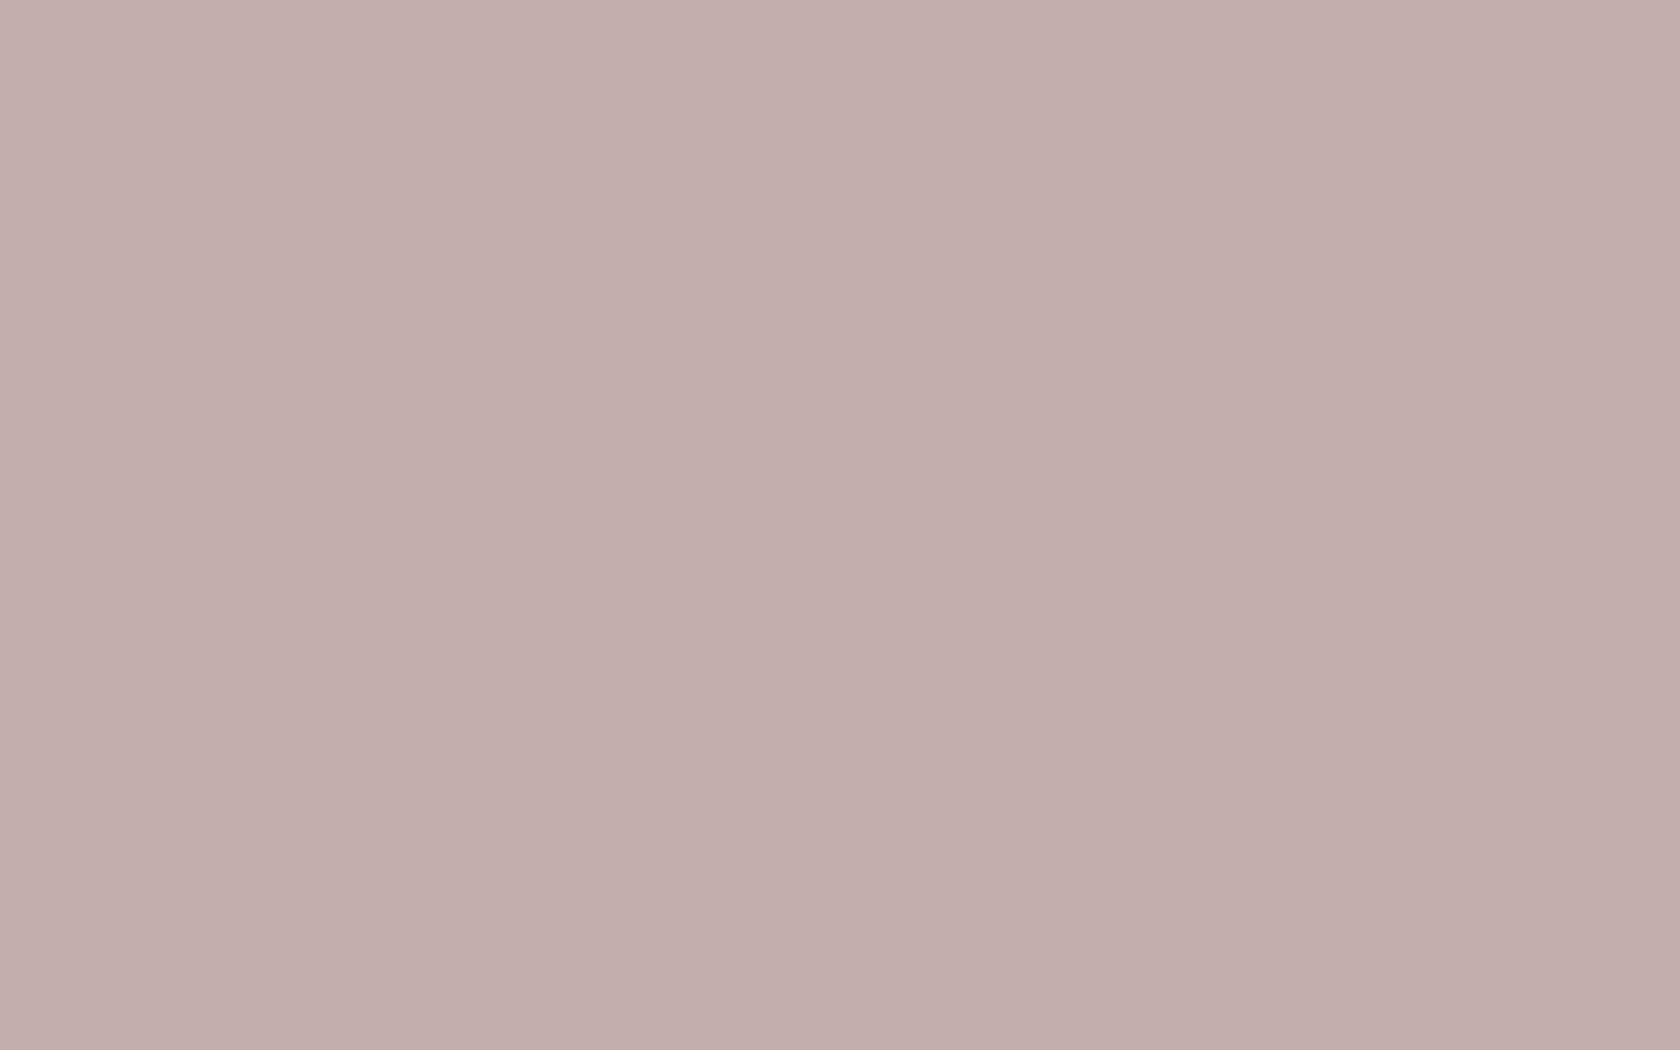 1680x1050 Silver Pink Solid Color Background